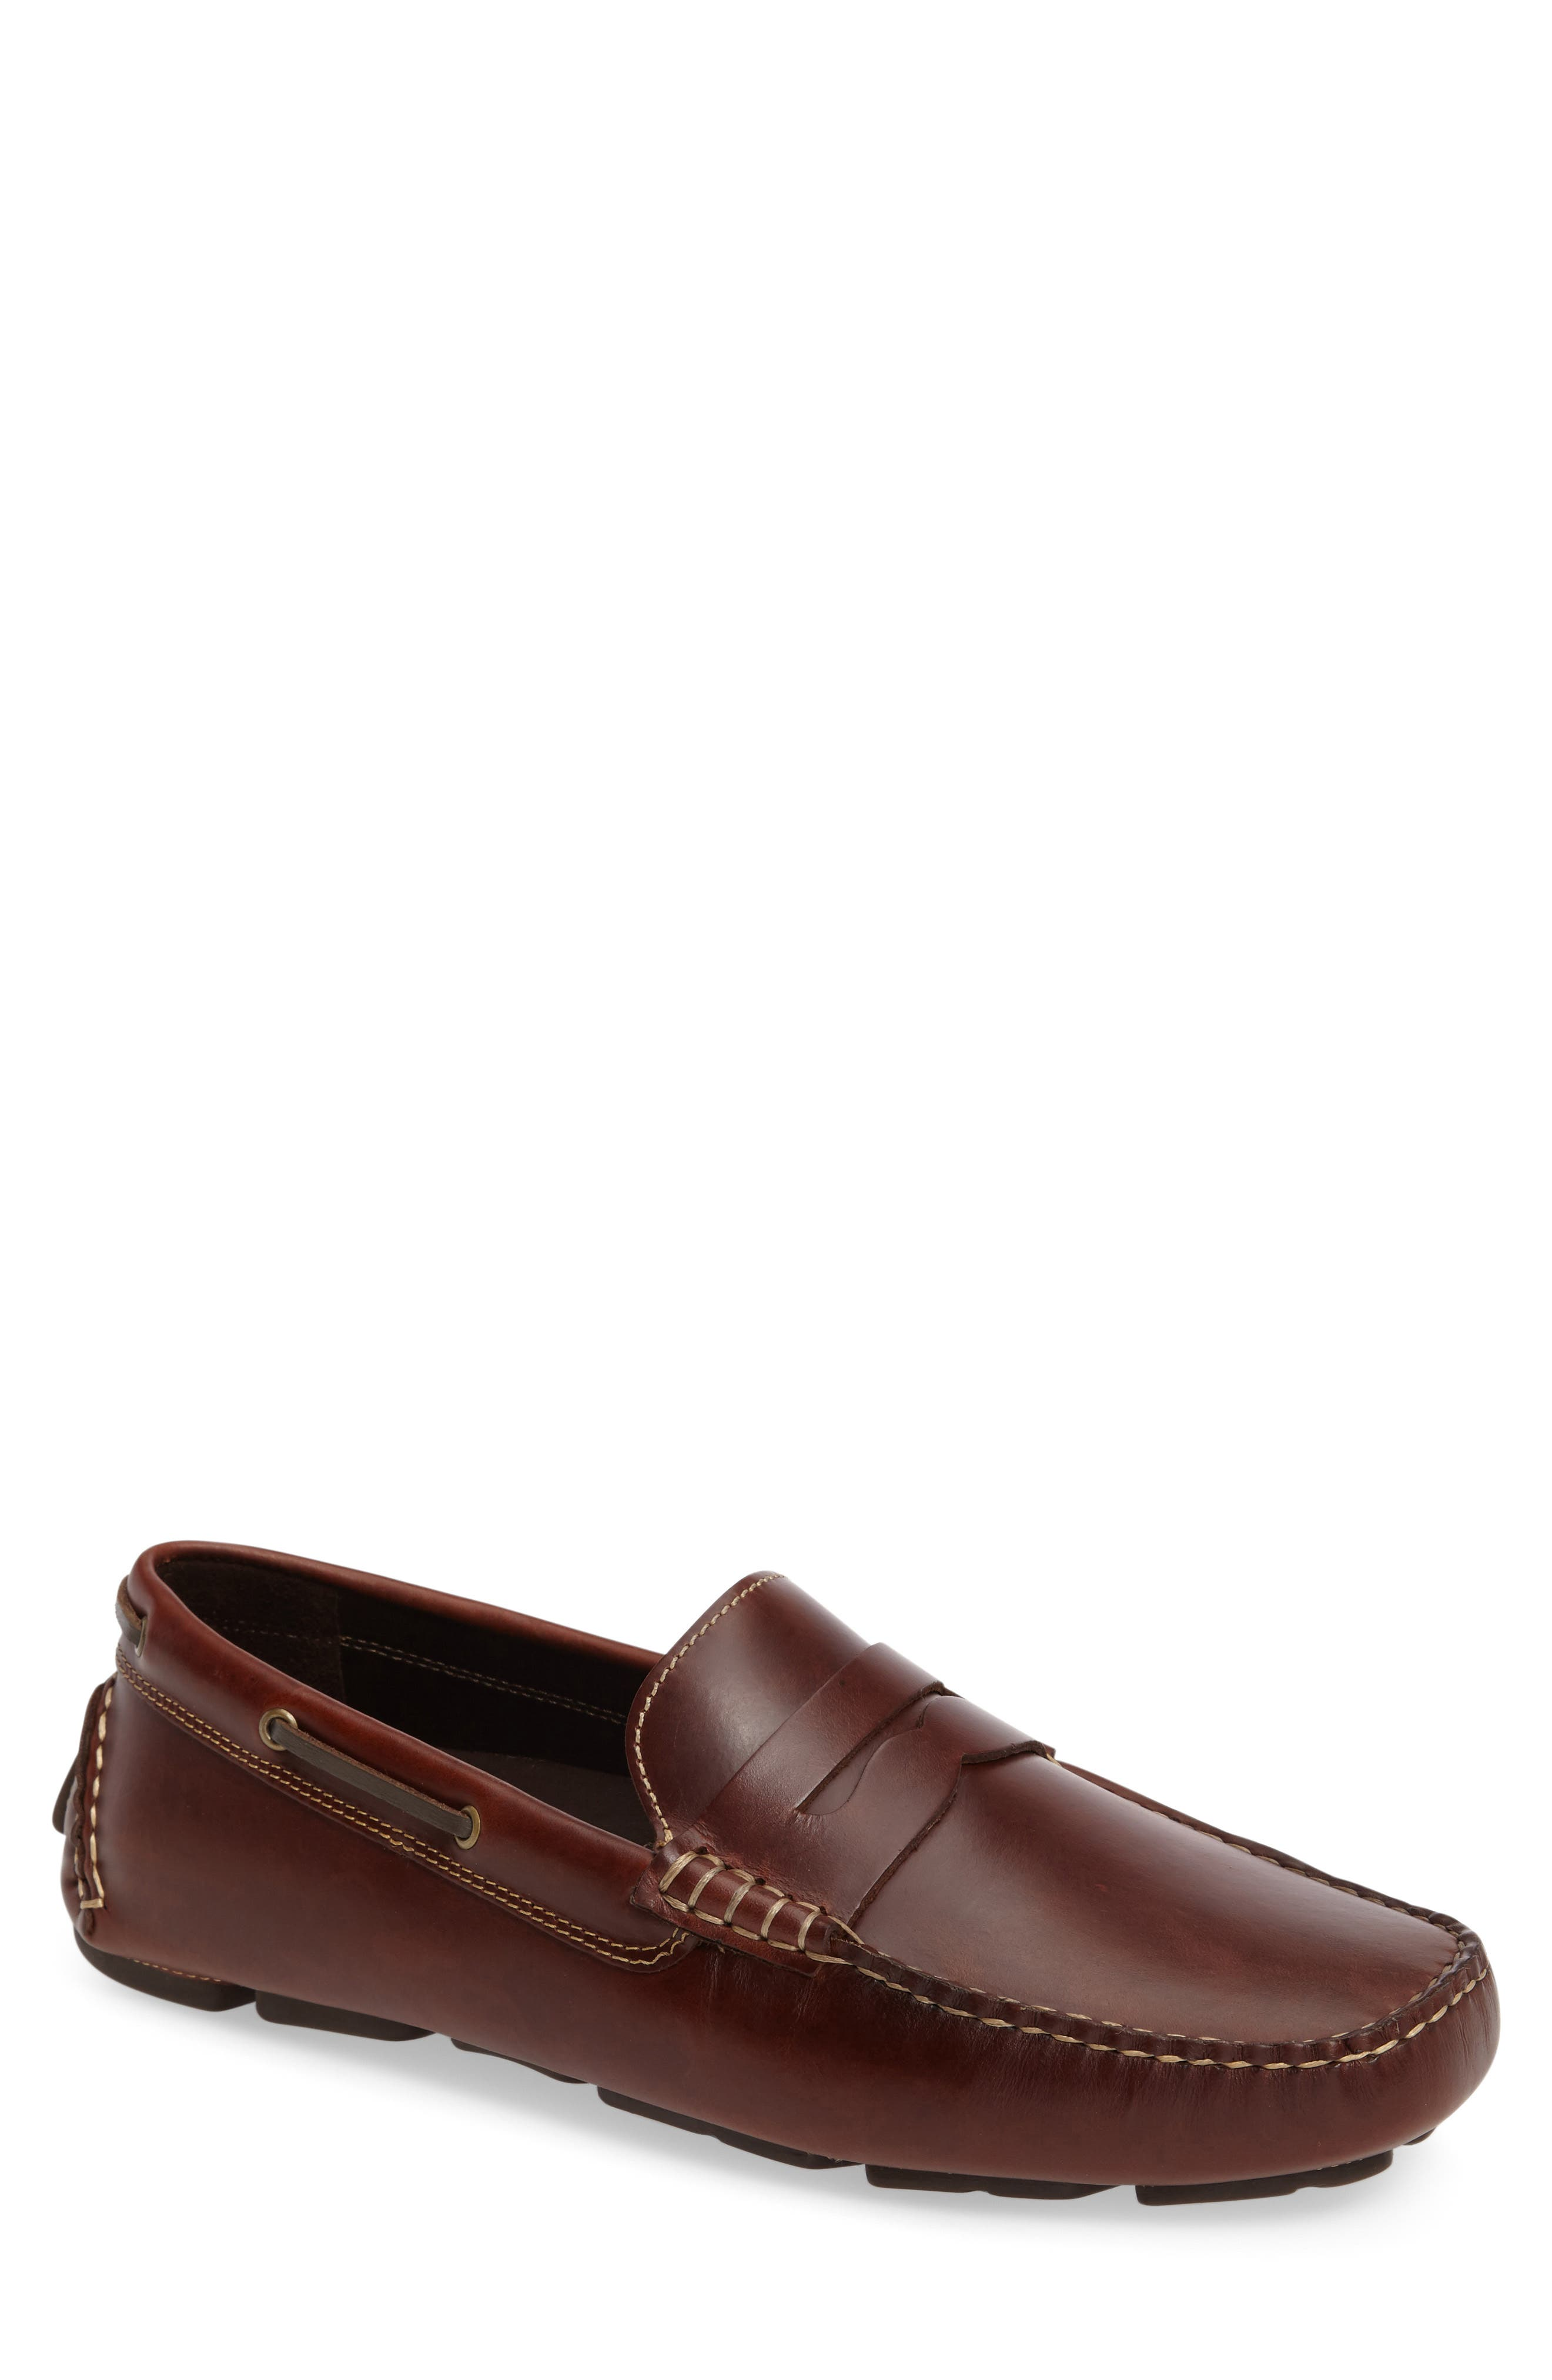 JOHNSTON & MURPHY Gibson Penny Driving Loafer, Main, color, TAN LEATHER